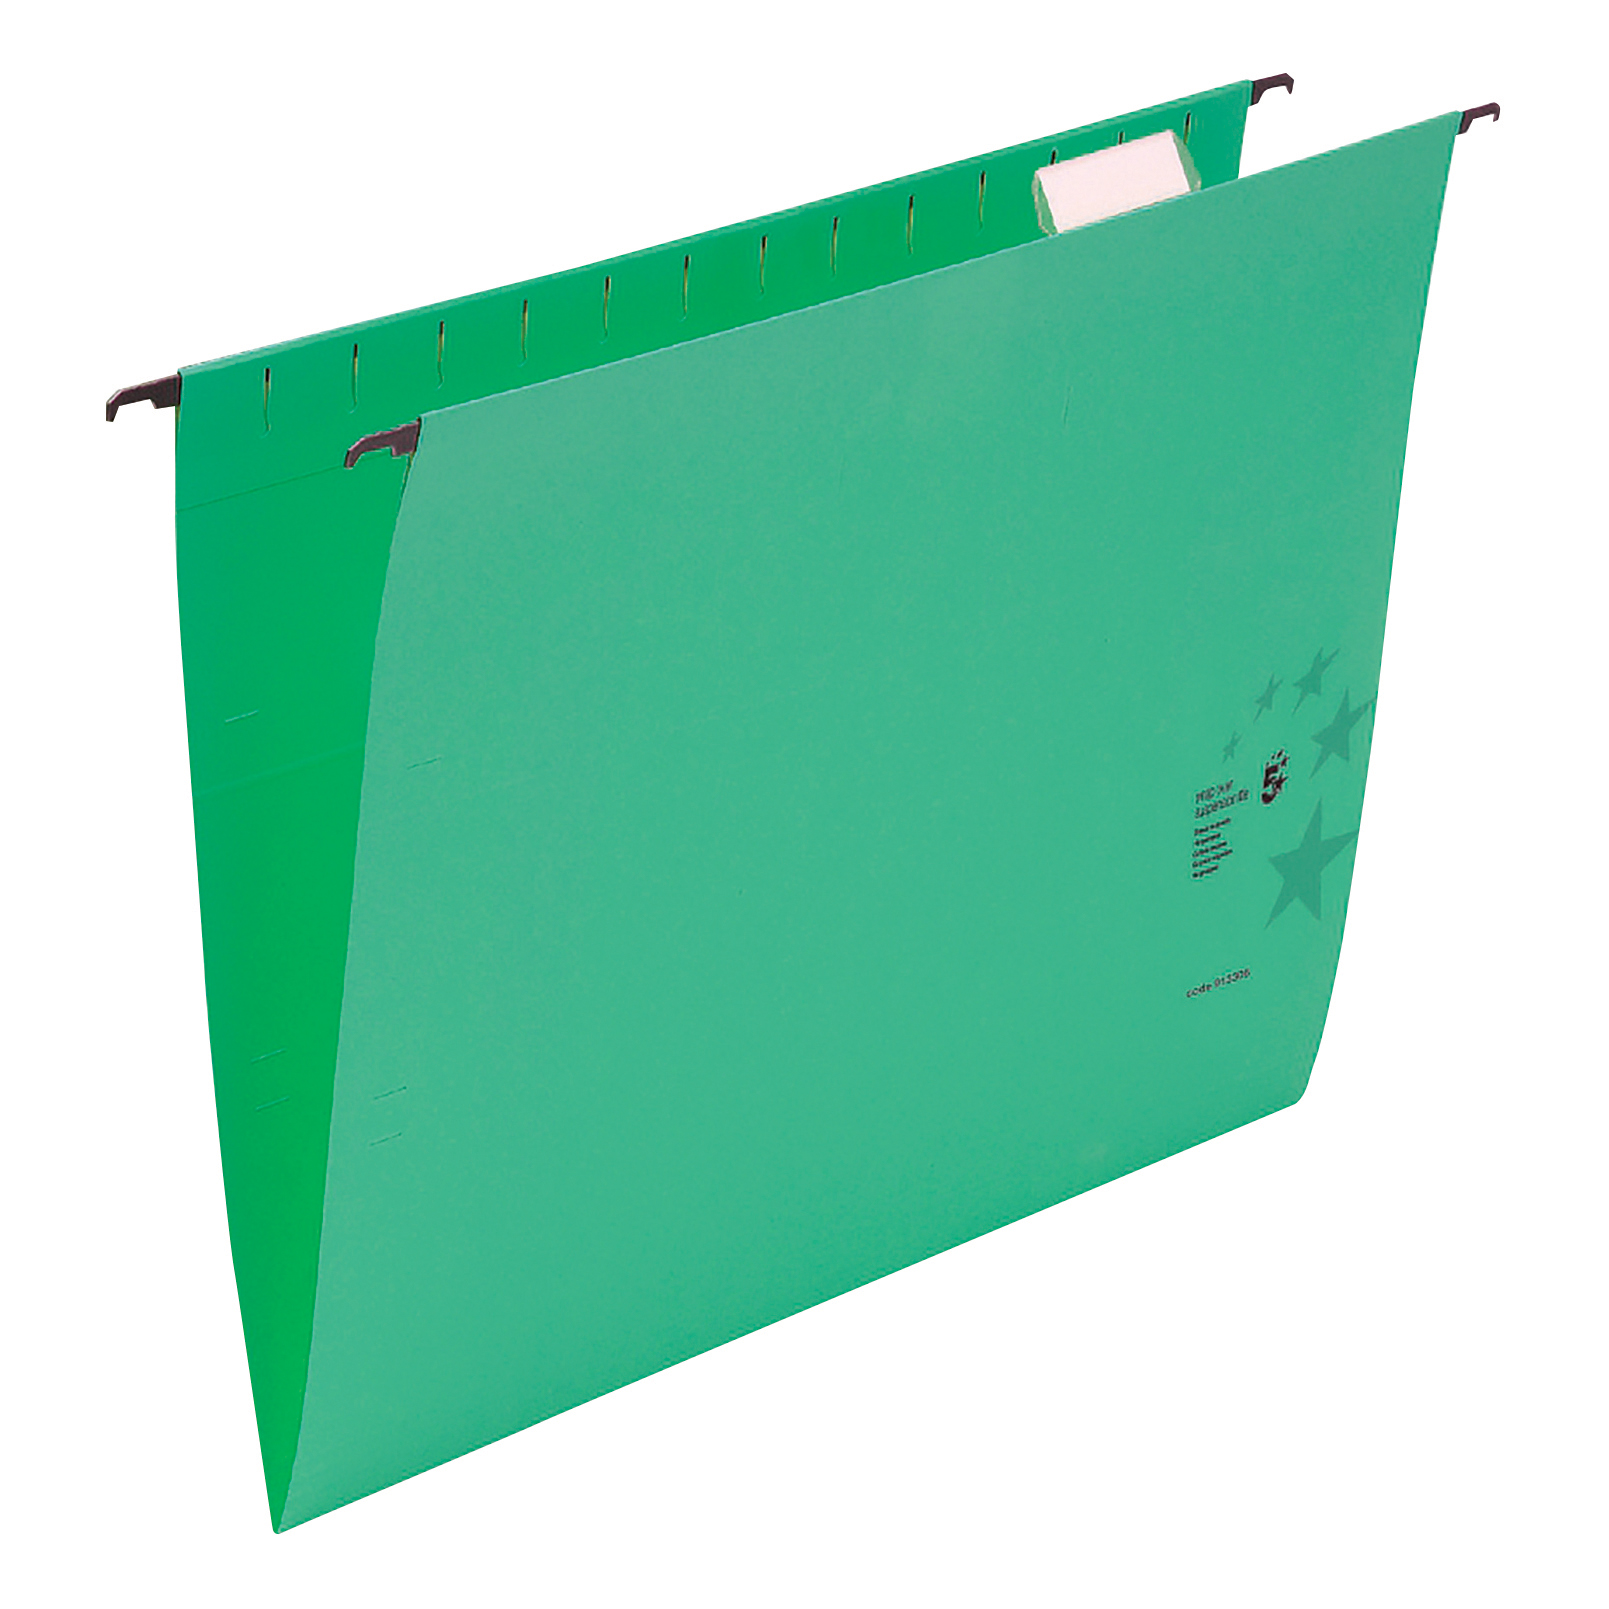 Suspension File 5 Star Office Suspension File with Tabs and Inserts Manilla 15mm V-base 230gsm Foolscap Green Pack 50